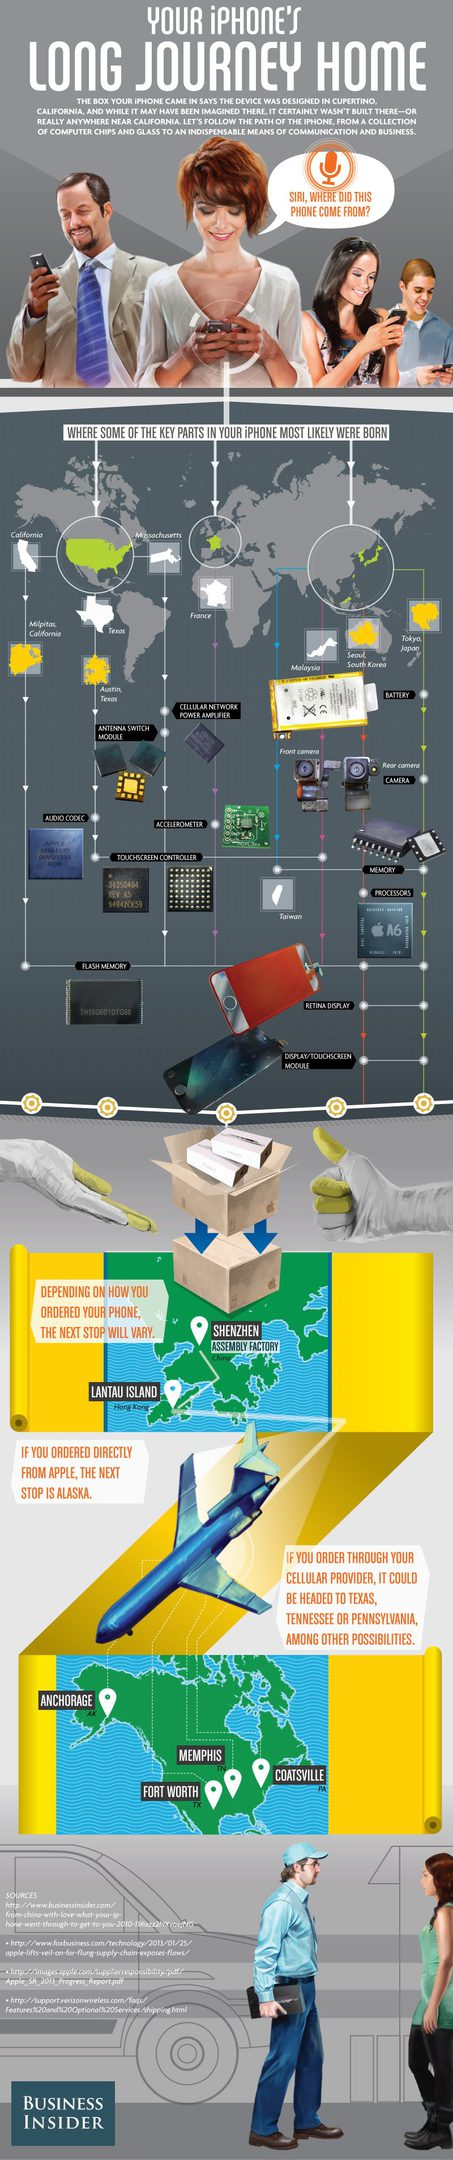 Your iPhone 's Long Journey Home [Infographic]